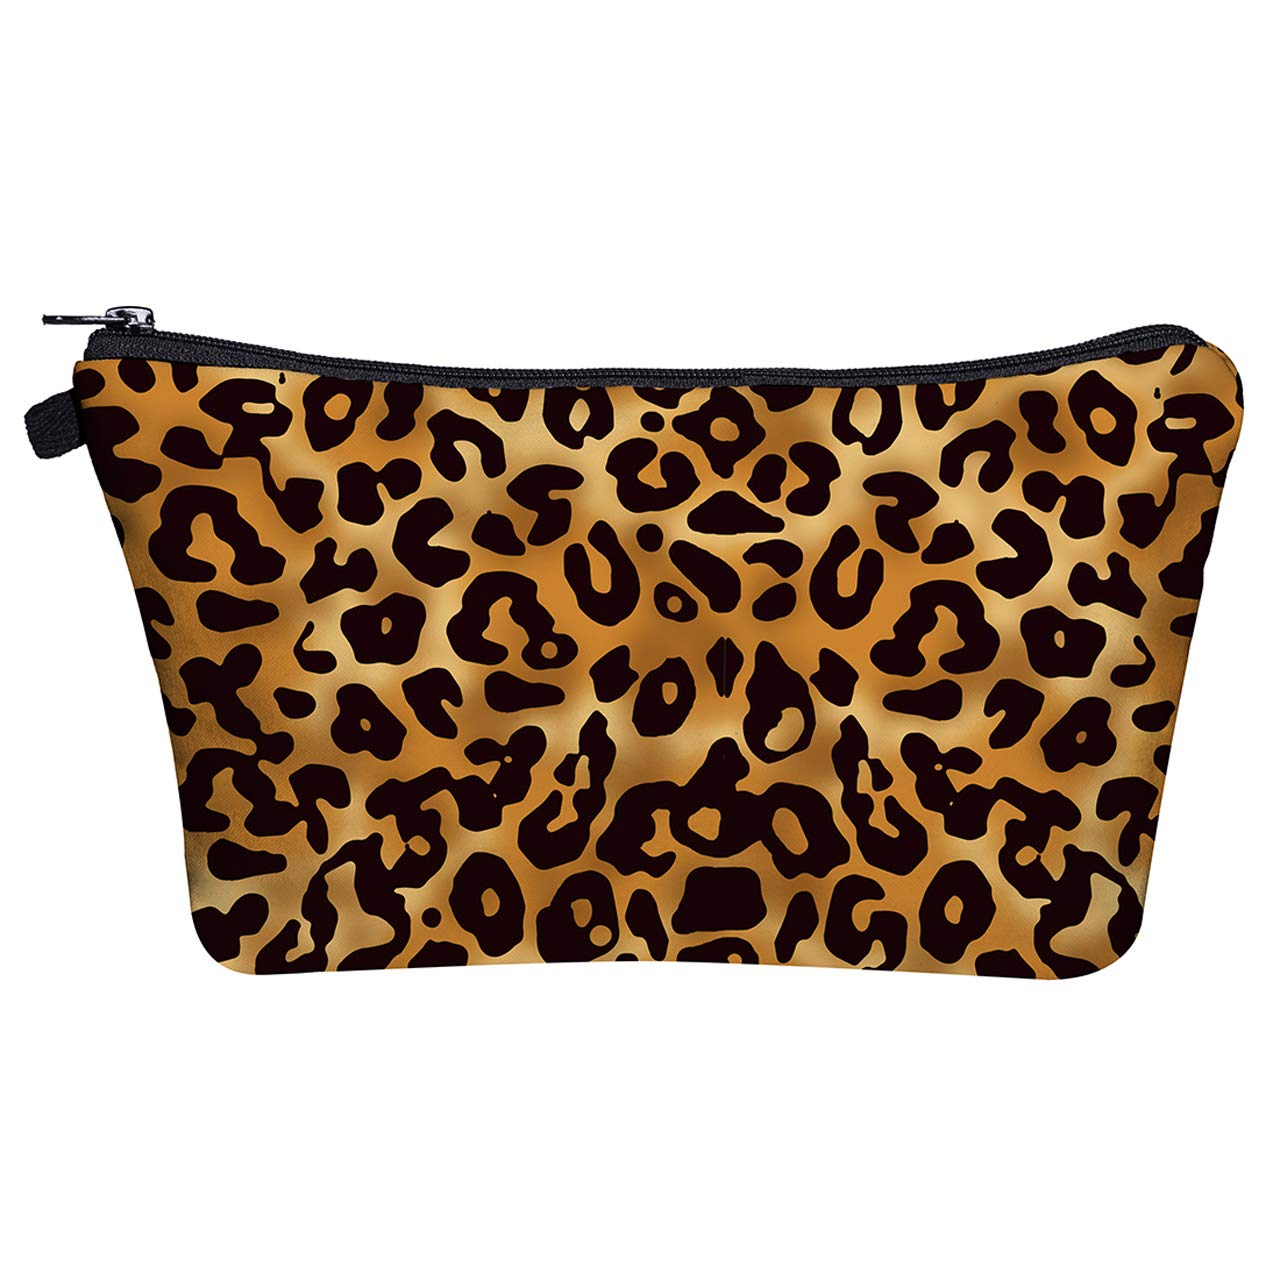 CCbeauty Portable Cosmetic Bag Organizer Travel Magic 3D Printing Makeup Bags Waterproof Leopard Brush Storage Pouch for Women Purse (03)